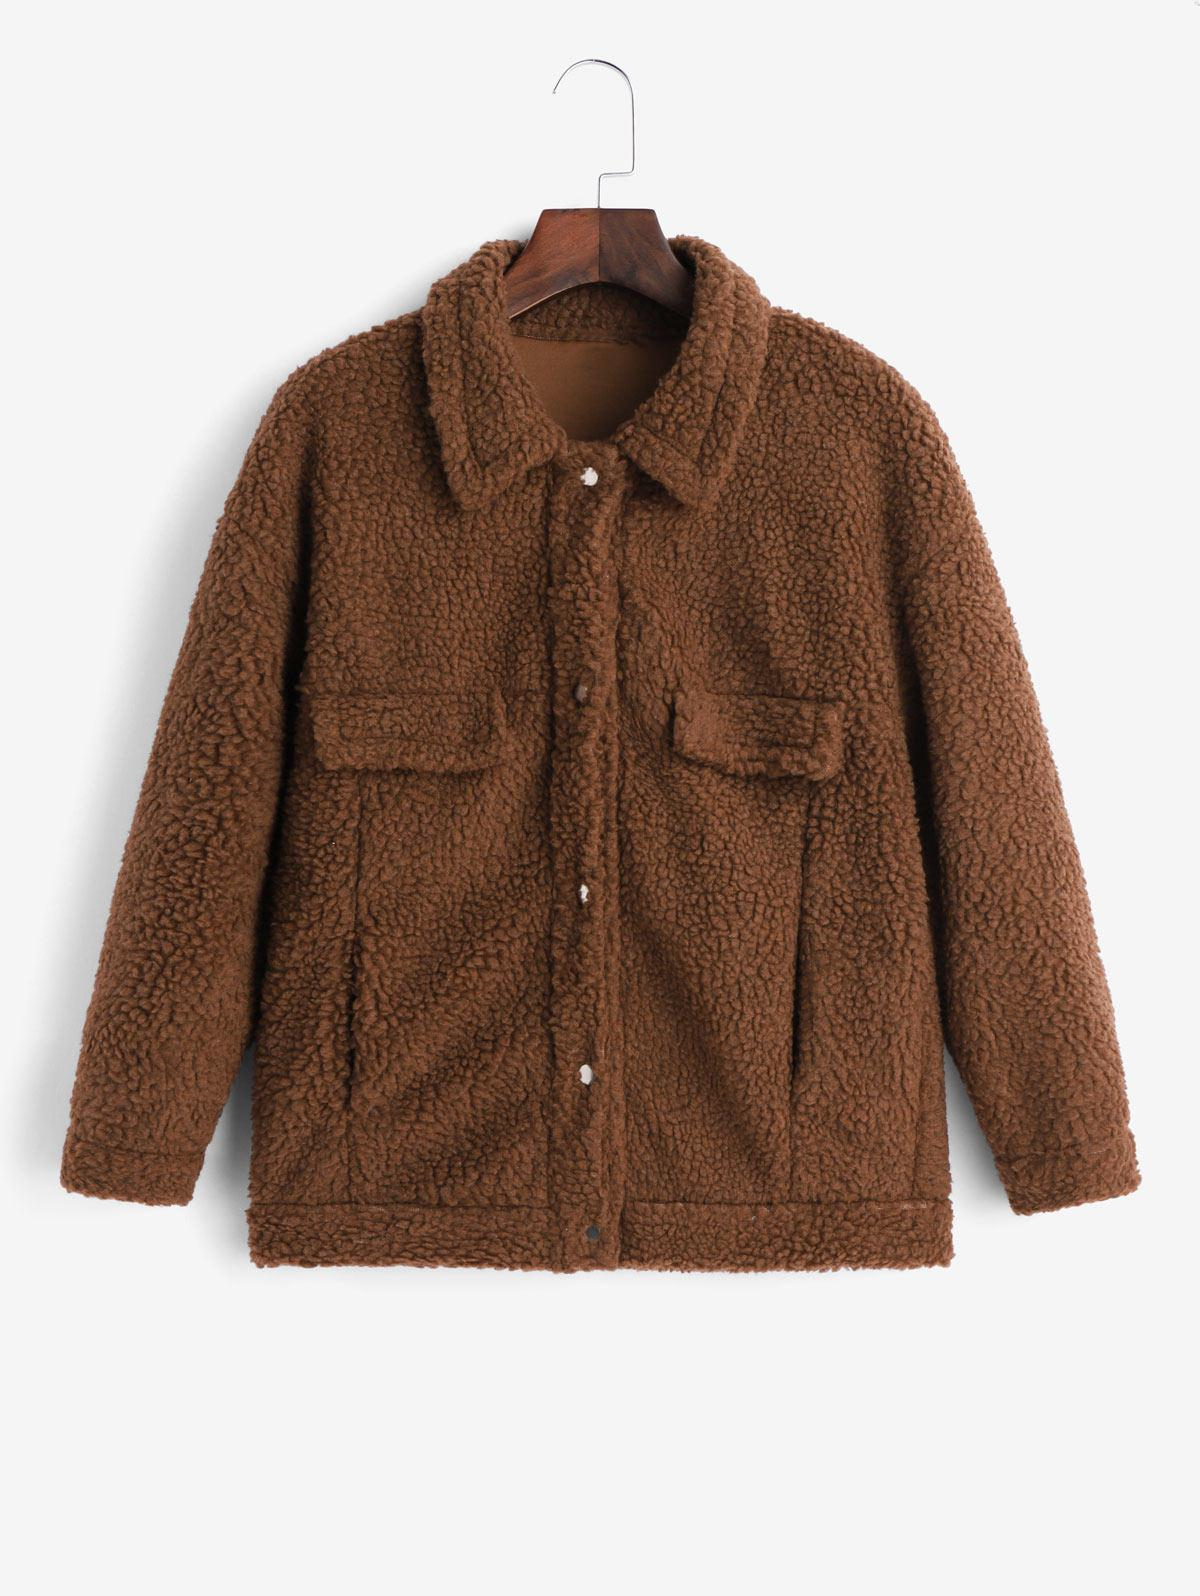 Snap Button Faux Pockets Solid Teddy Jacket